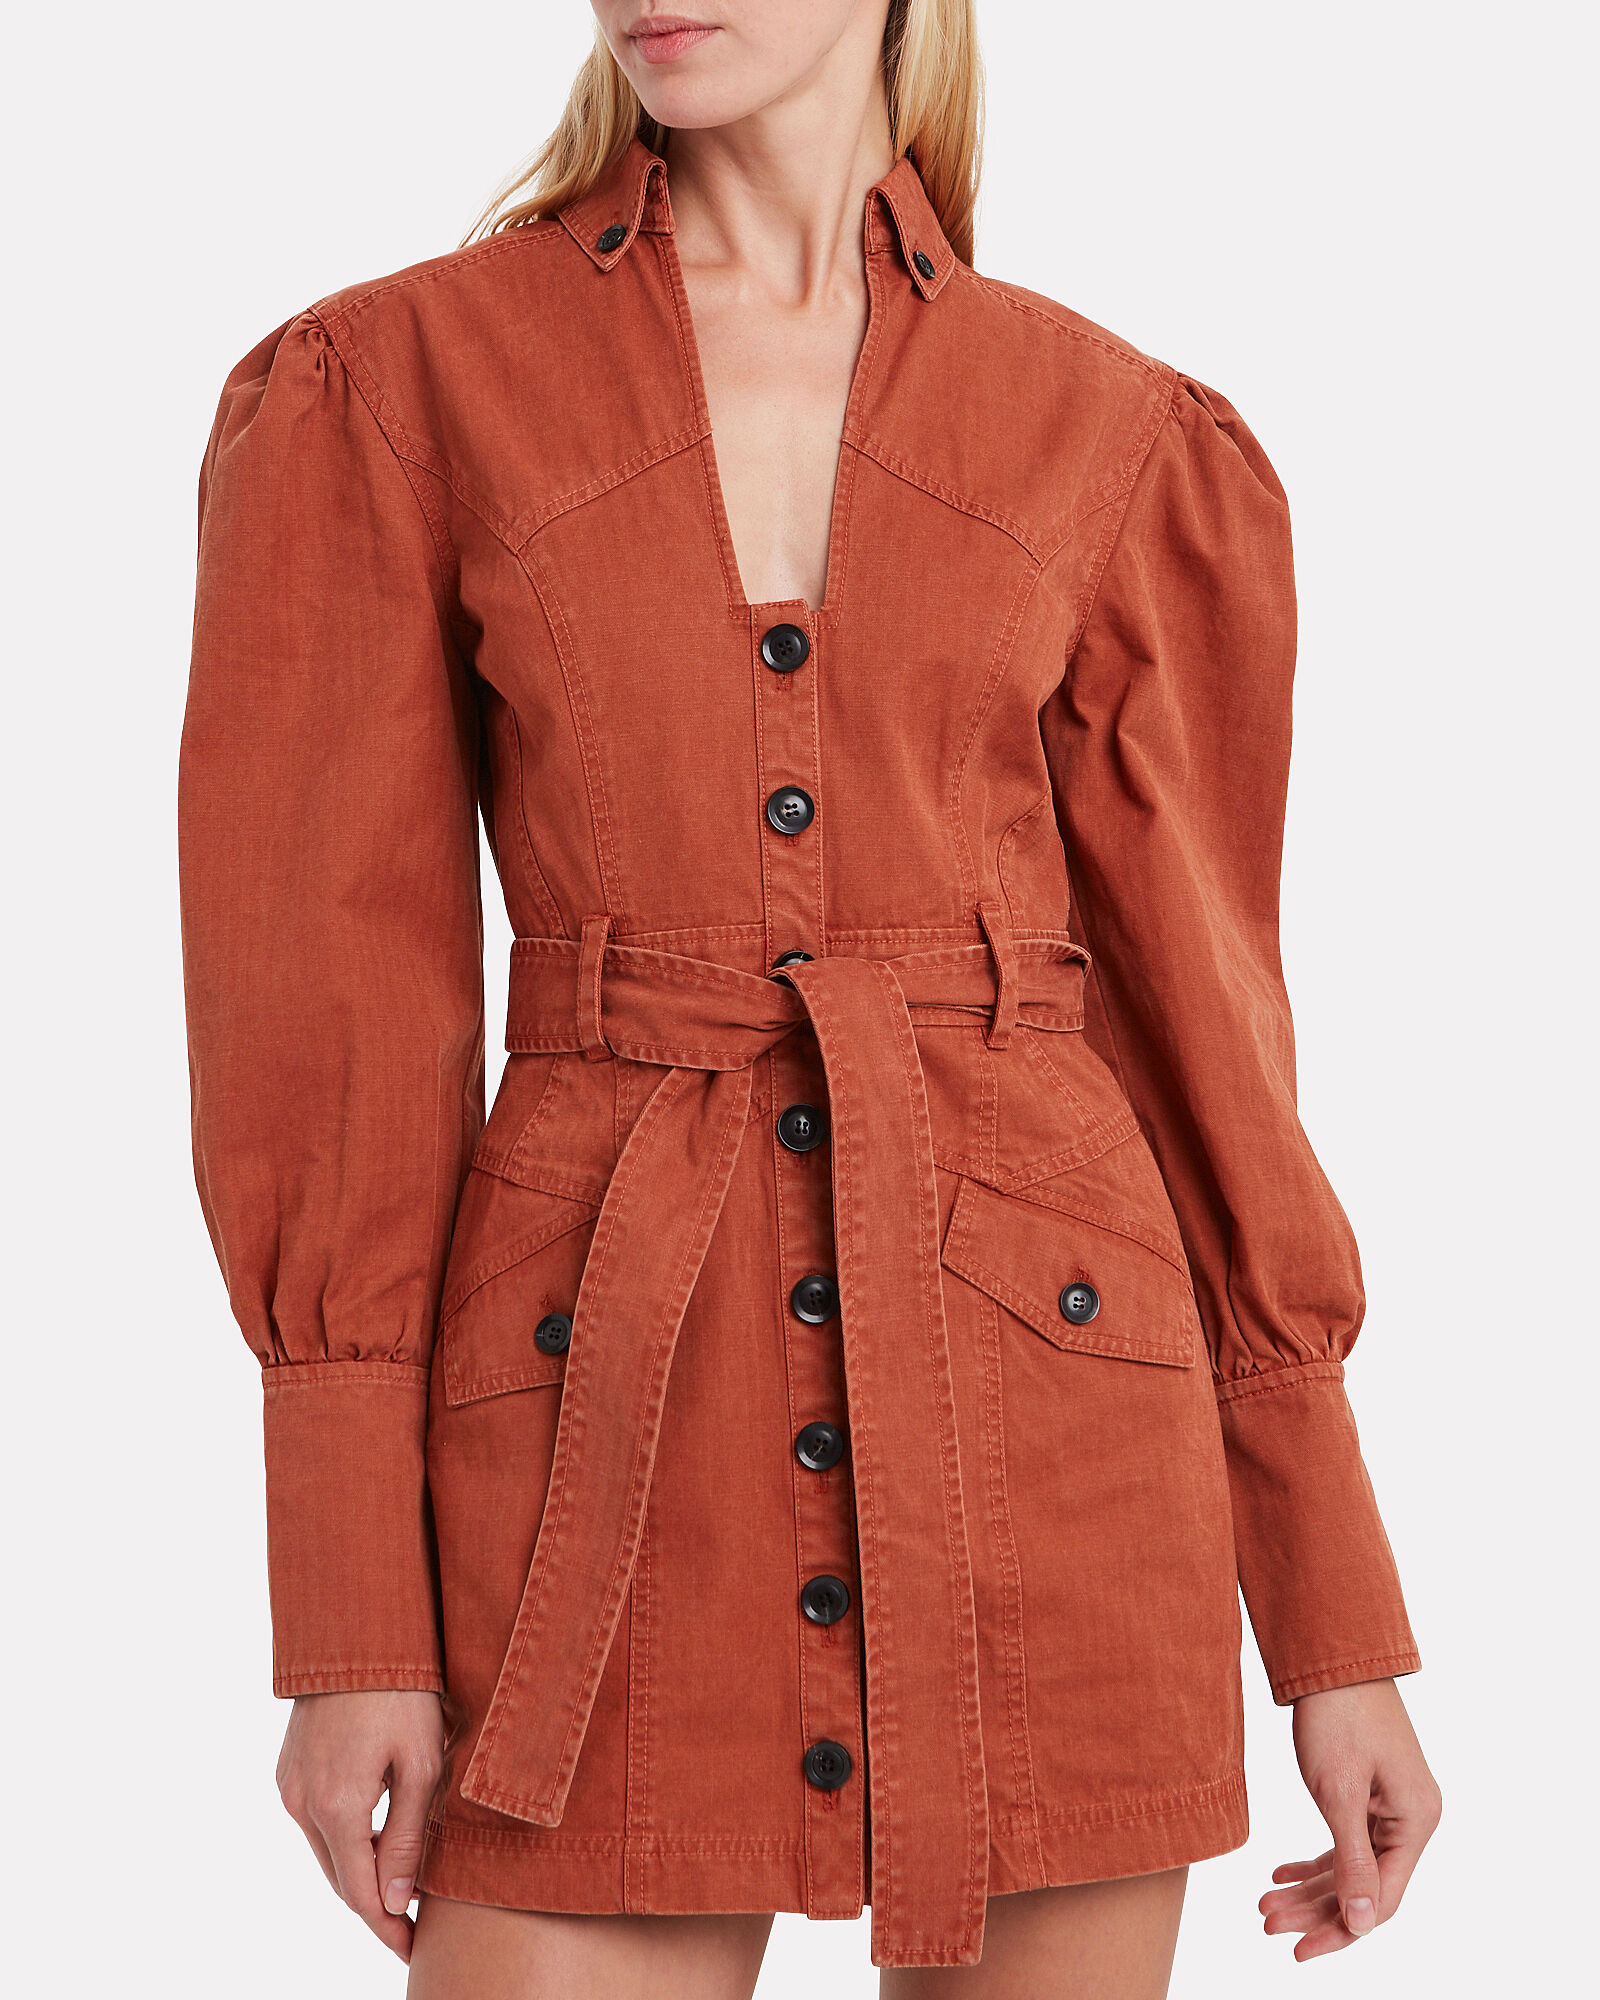 Mera Belted Cotton Canvas Dress, TERRACOTTA, hi-res